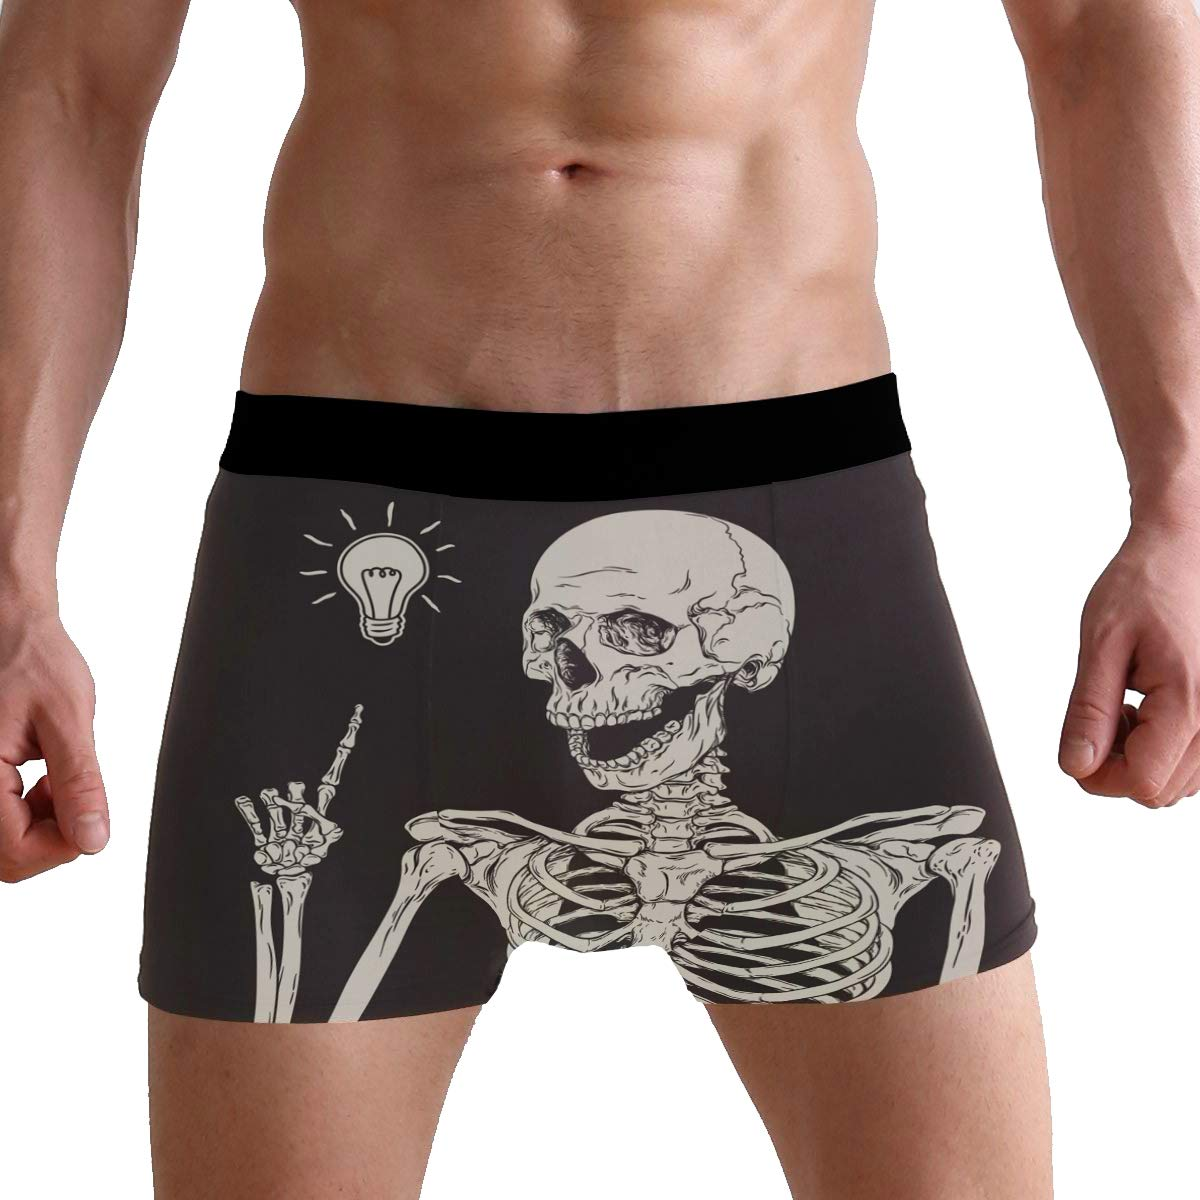 SUABO Men Boxer Briefs Polyester Underwear Men 2 Pack Boxer Briefs for Valentines Day with Human Skeleton Pattern